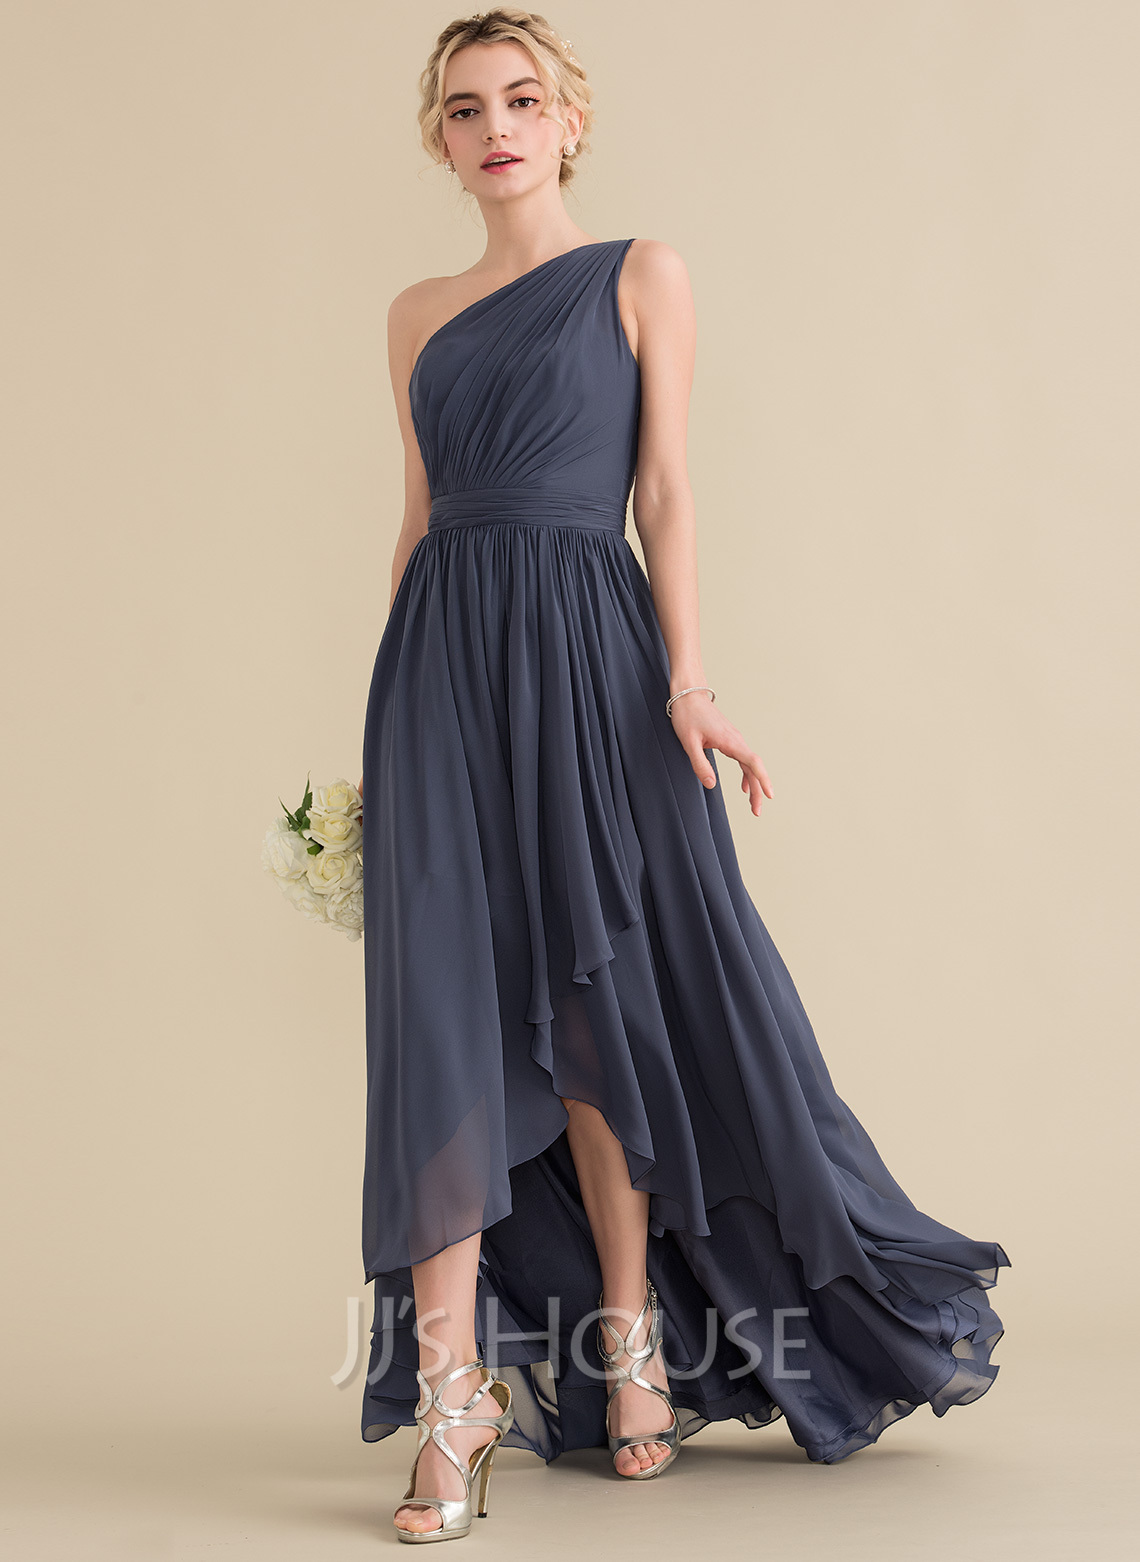 c111edee3a A-Line Princess One-Shoulder Asymmetrical Chiffon Bridesmaid Dress With  Cascading Ruffles. Loading zoom